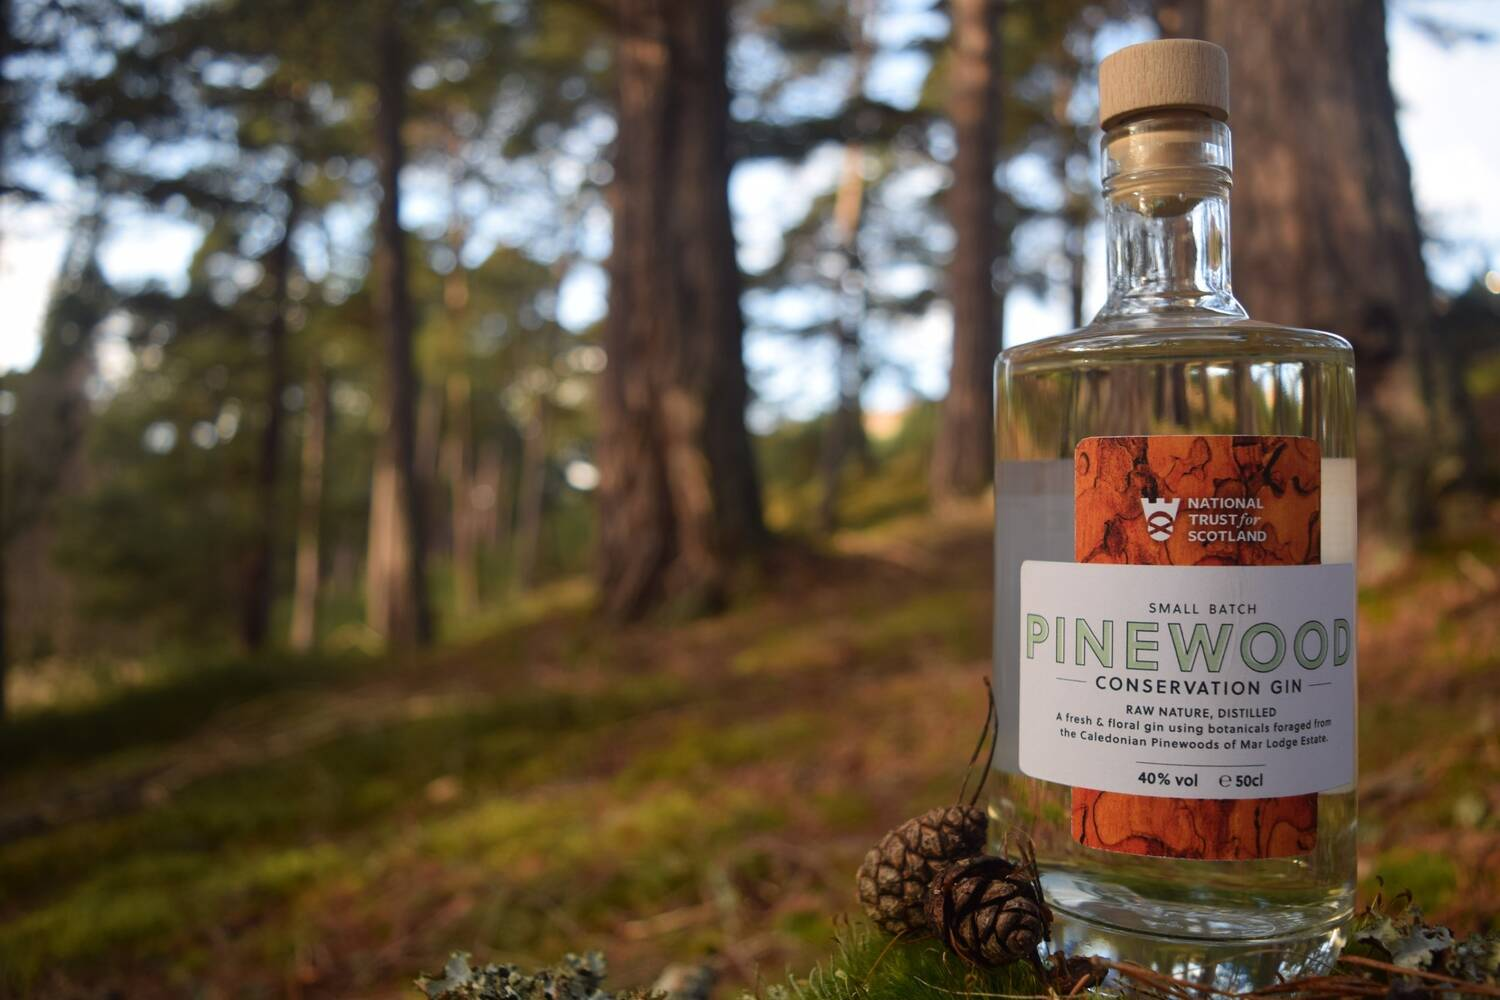 A bottle of gin sits on a log in a woodland, next to a pine cone.